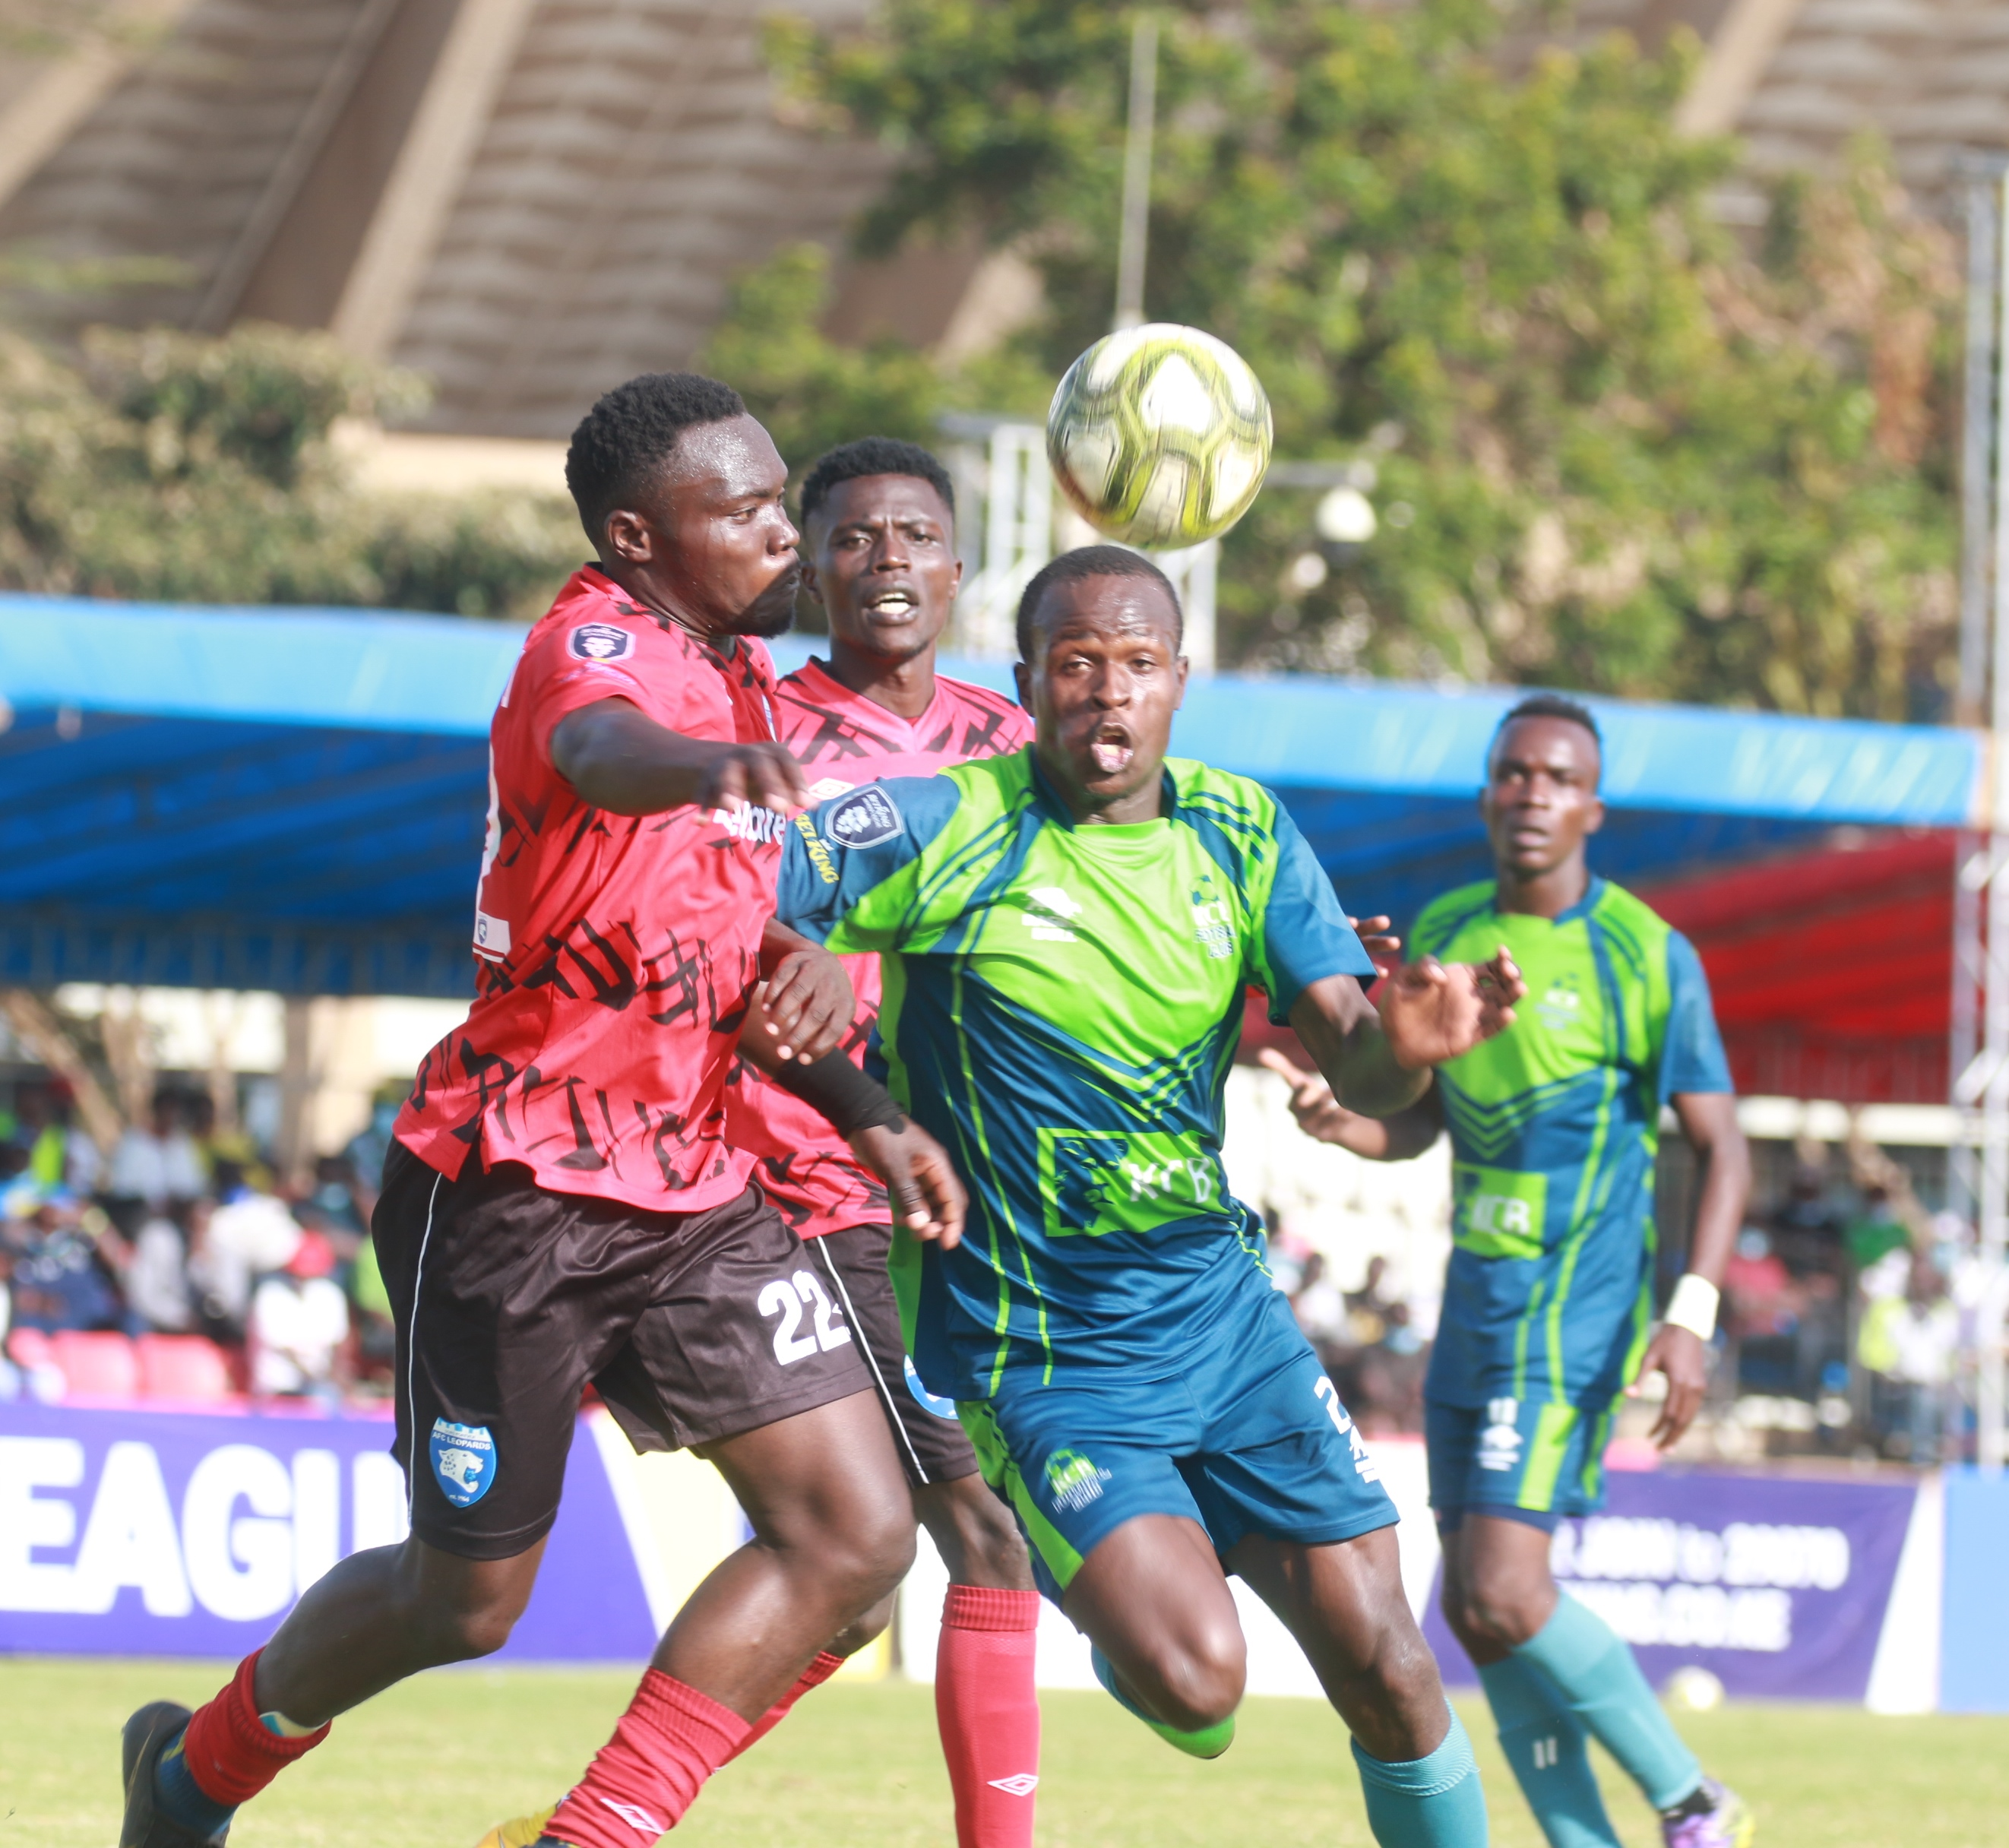 KCB's fine run halted by AFC Leopards